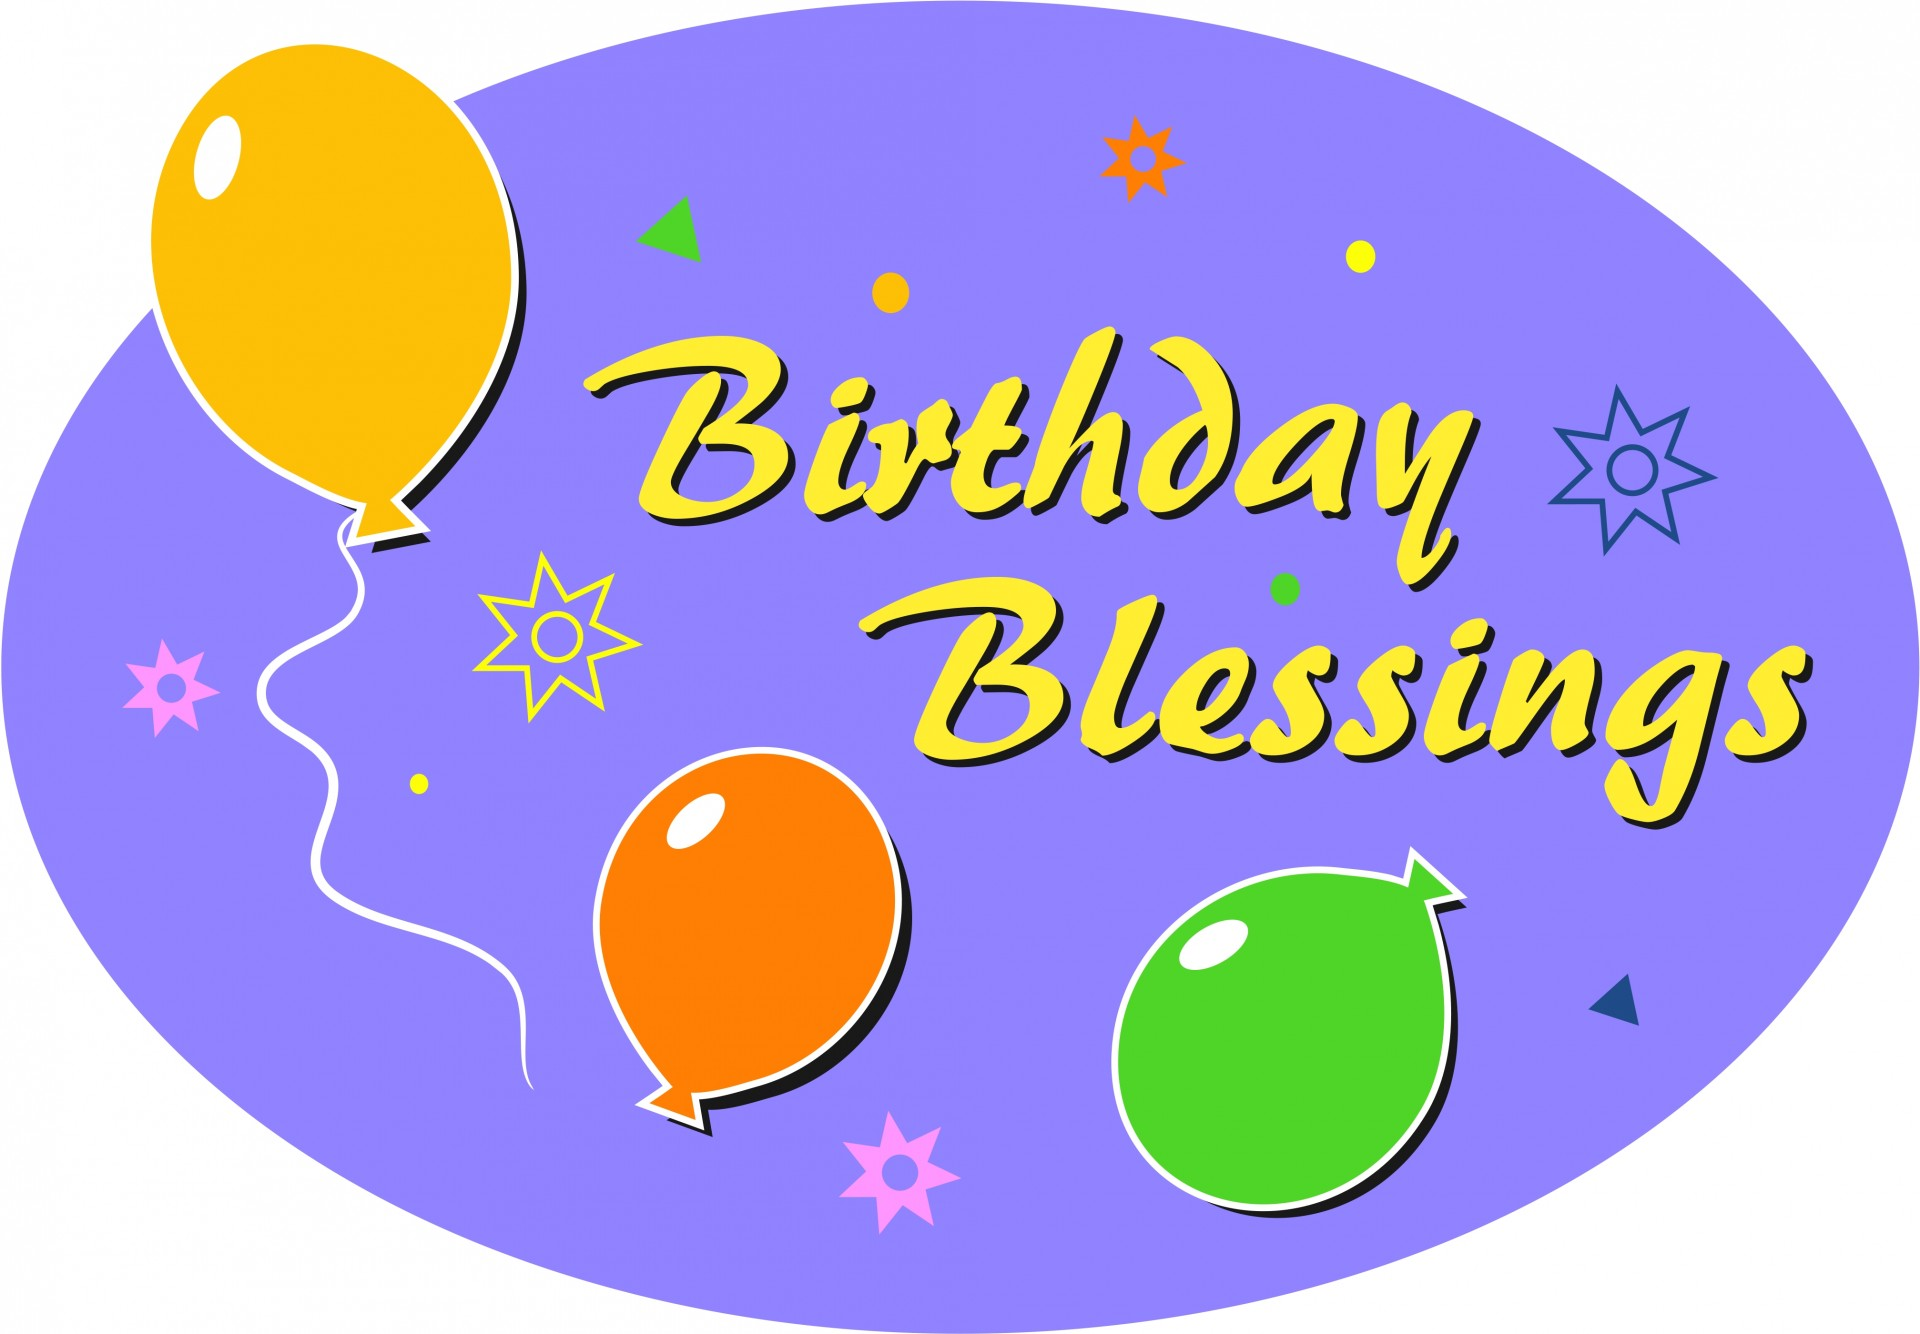 Birthday Card Clipart At Getdrawings Free For Personal Use